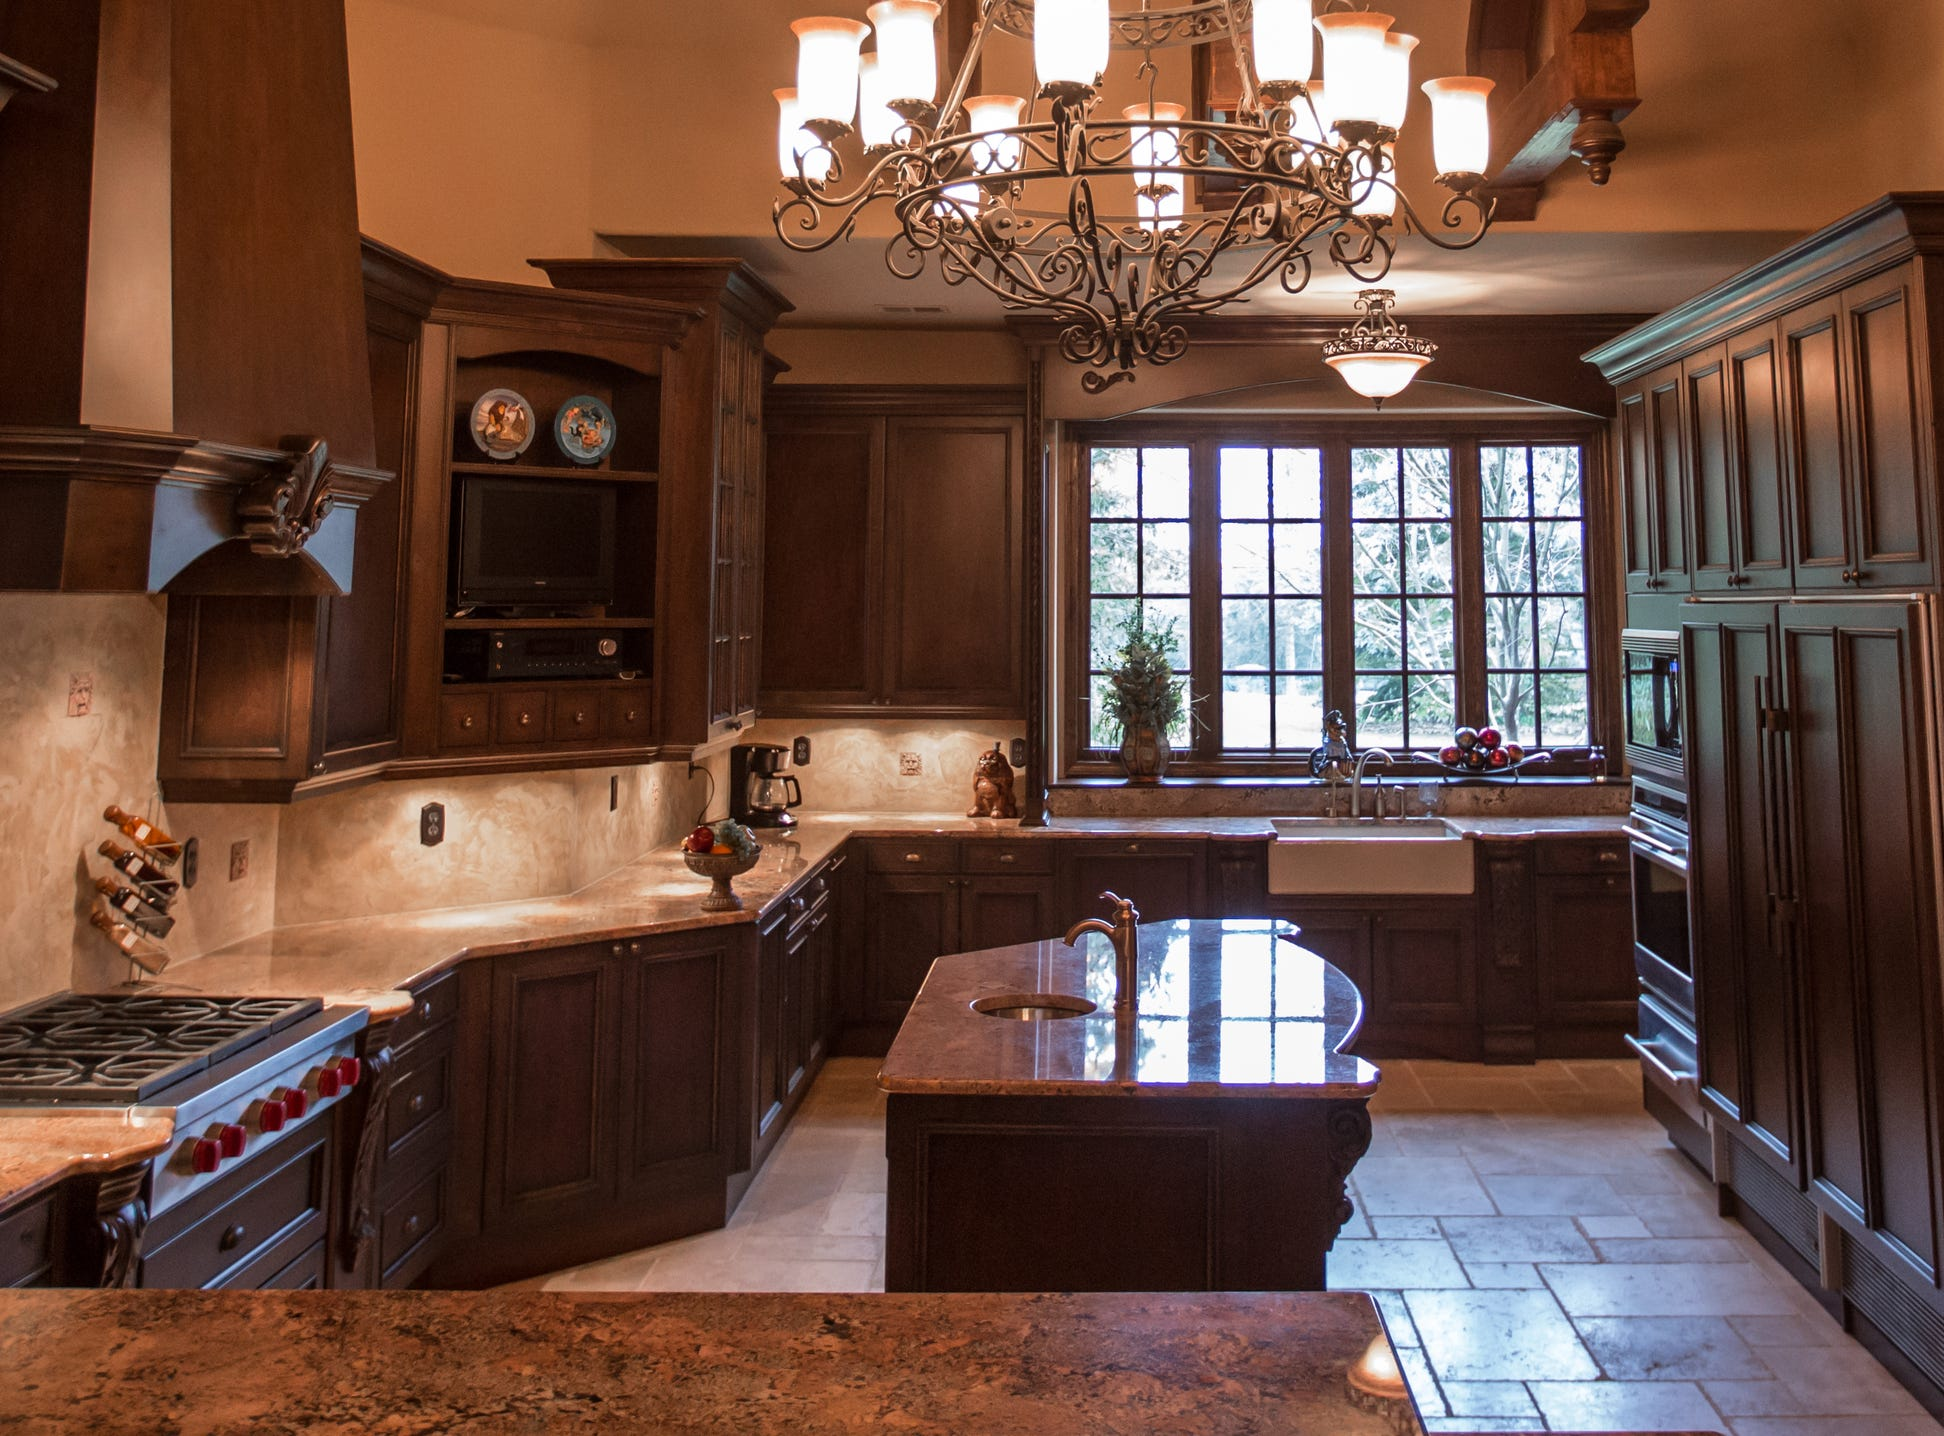 A view of the custom designed kitchen with professional grade appliances and natural limestone tile imported from Italy.